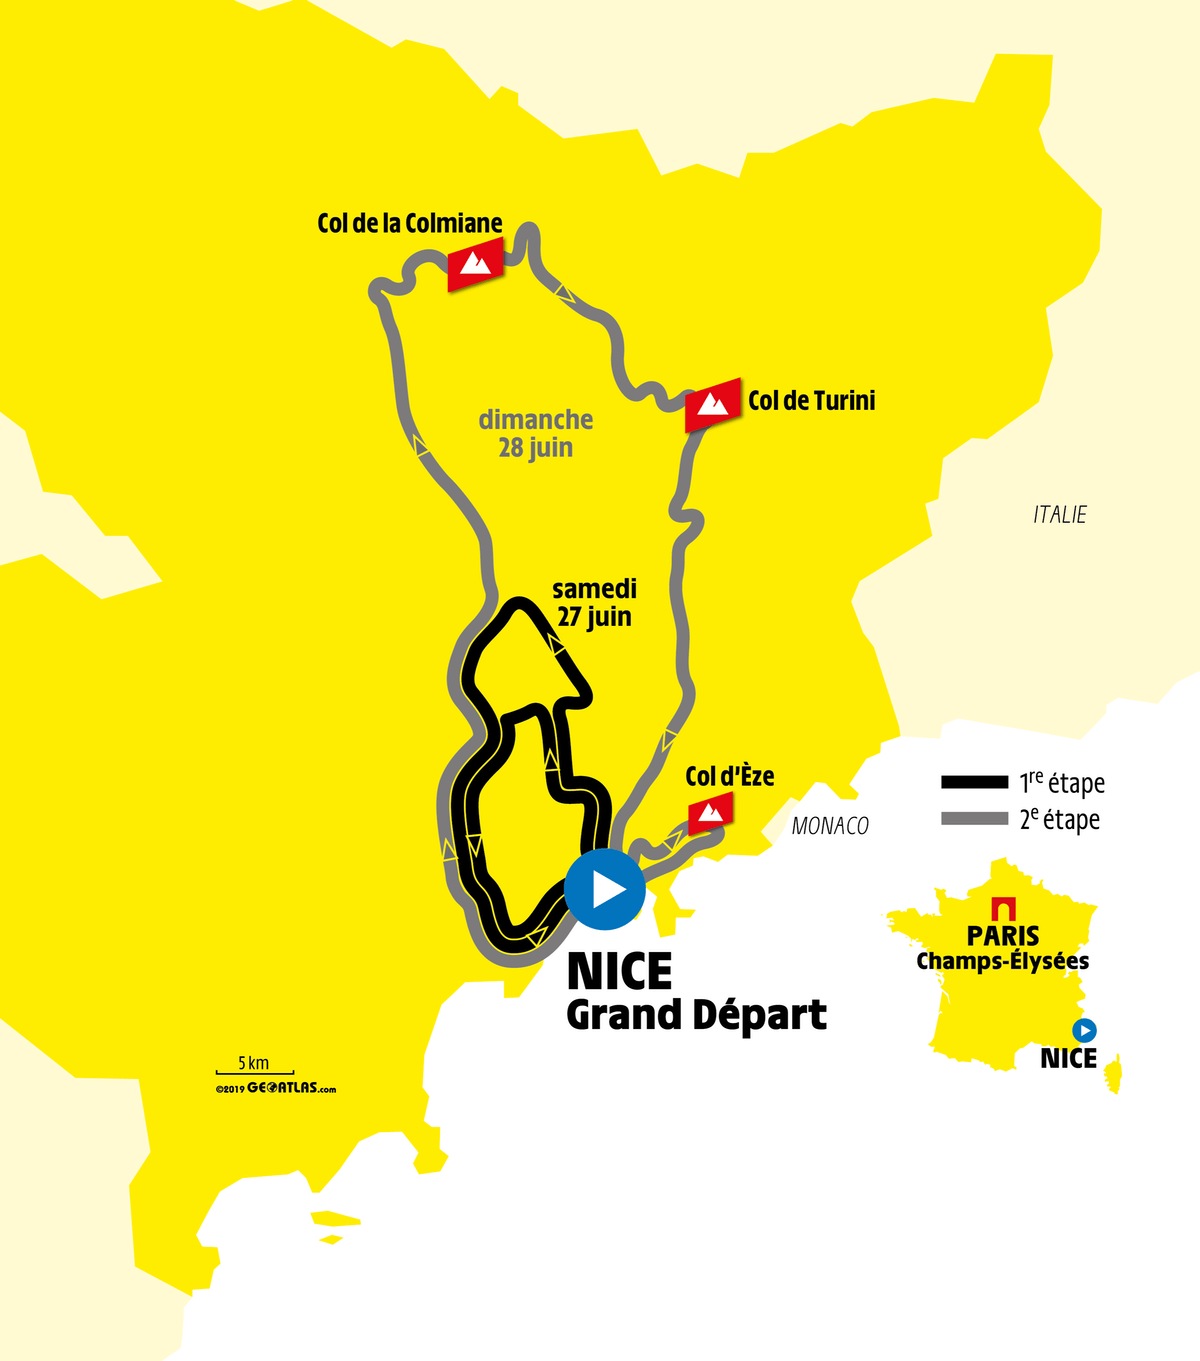 Tour de France grand depart map Nice 2020